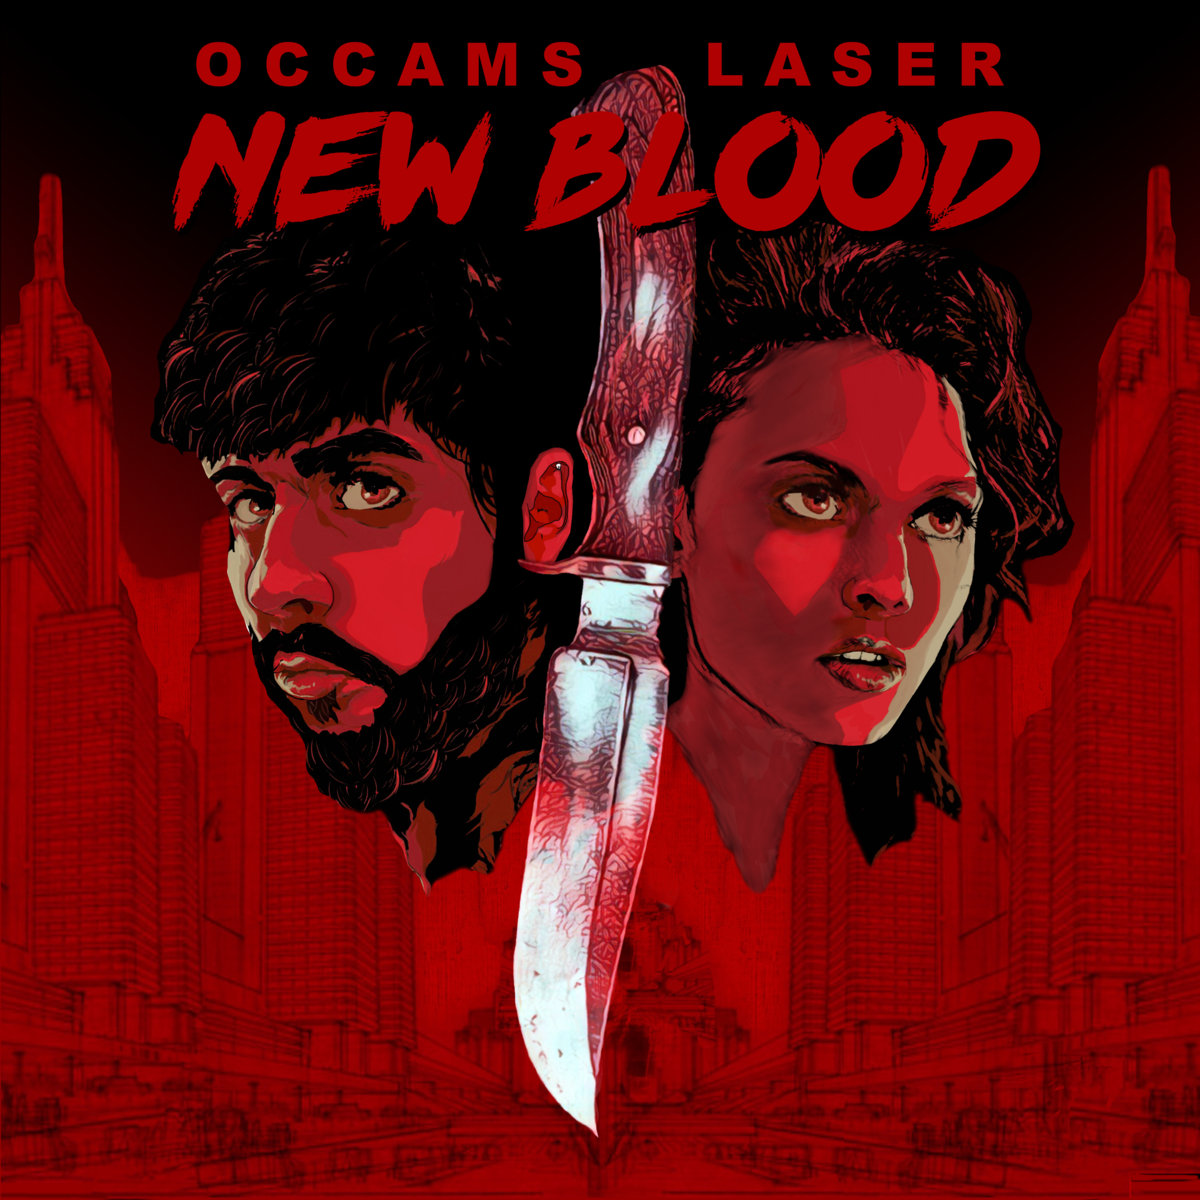 Occam's Laser New Blood - Music Review